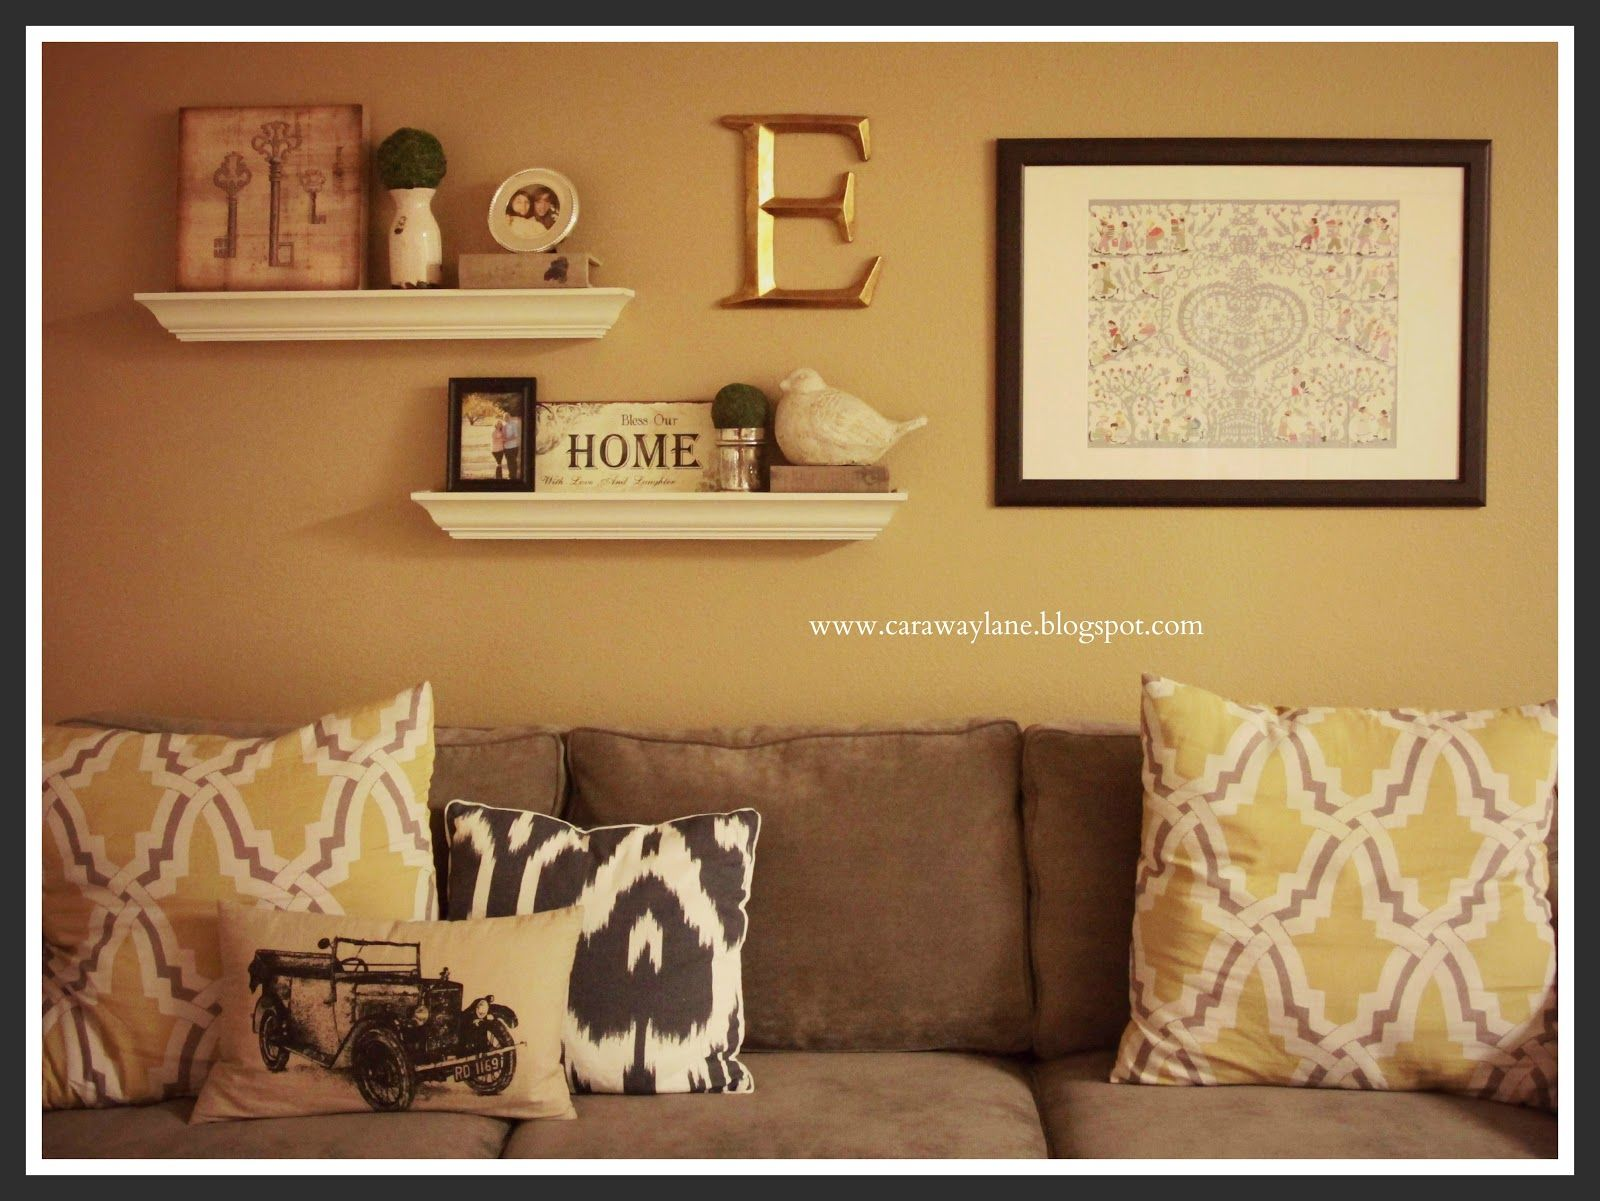 Decorate over a sofa above the couch wall decor future for Room wall art ideas